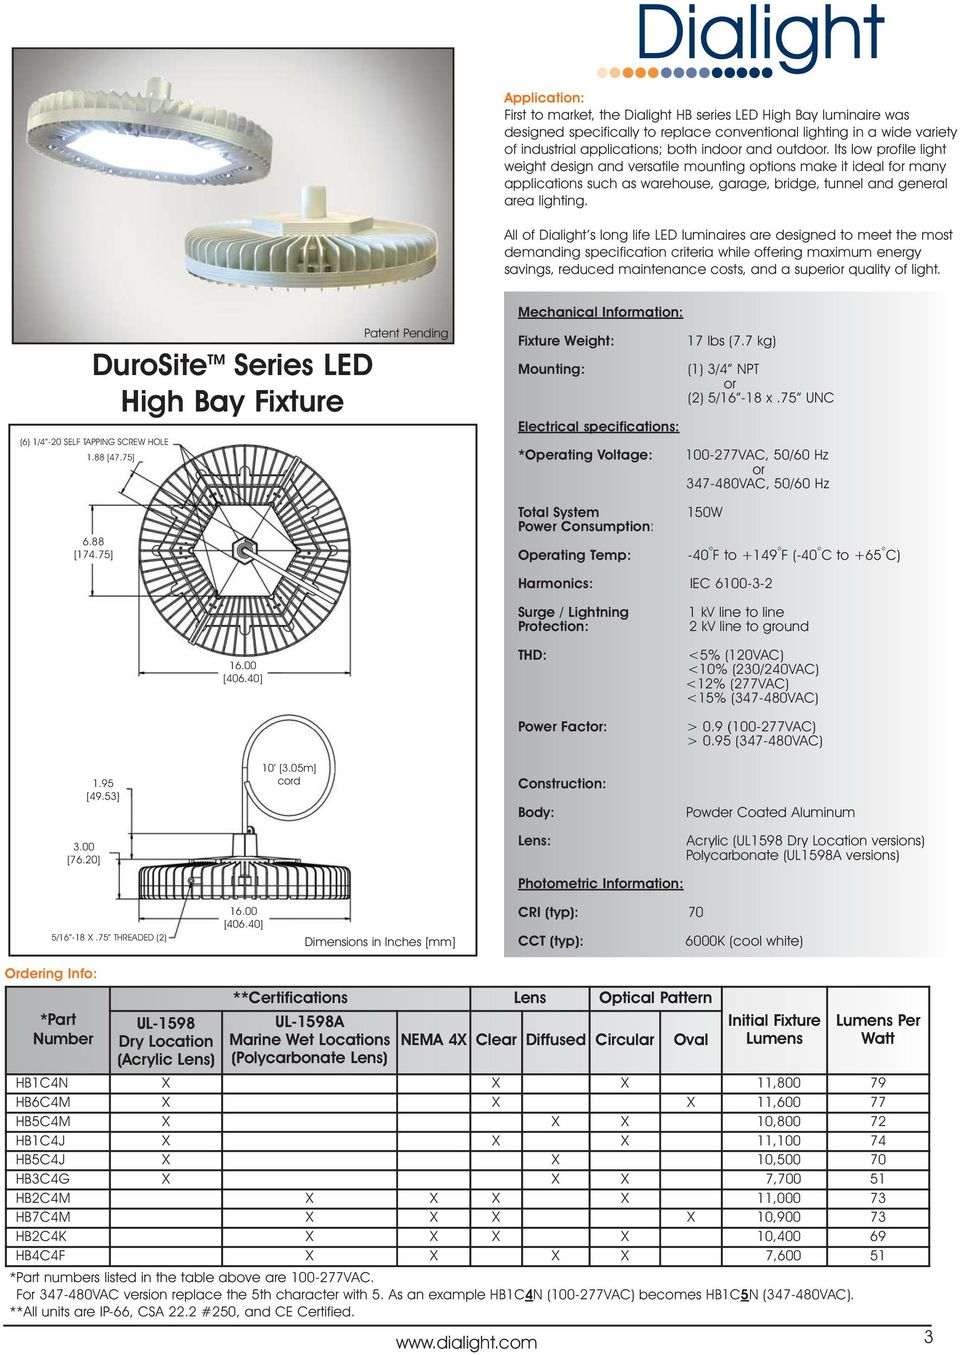 All of Dialight s long life LED luminaires are designed to meet the most demanding specification criteria hile offering maximum energy savings, reduced maintenance costs, and a superior quality of